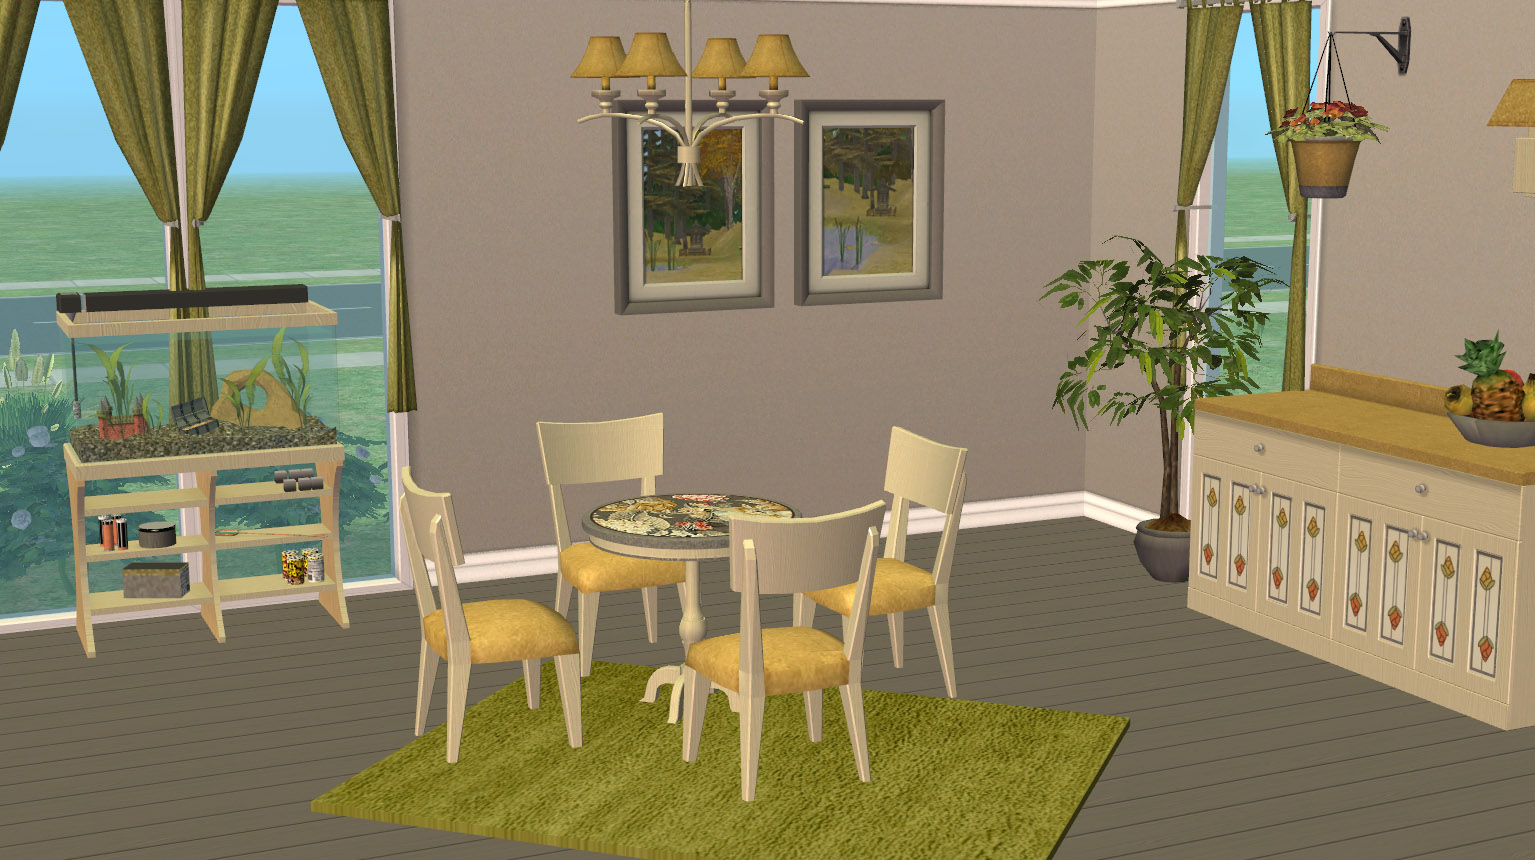 Mod the sims claybee kitchen and dining room maxis for Sims 3 dining room ideas